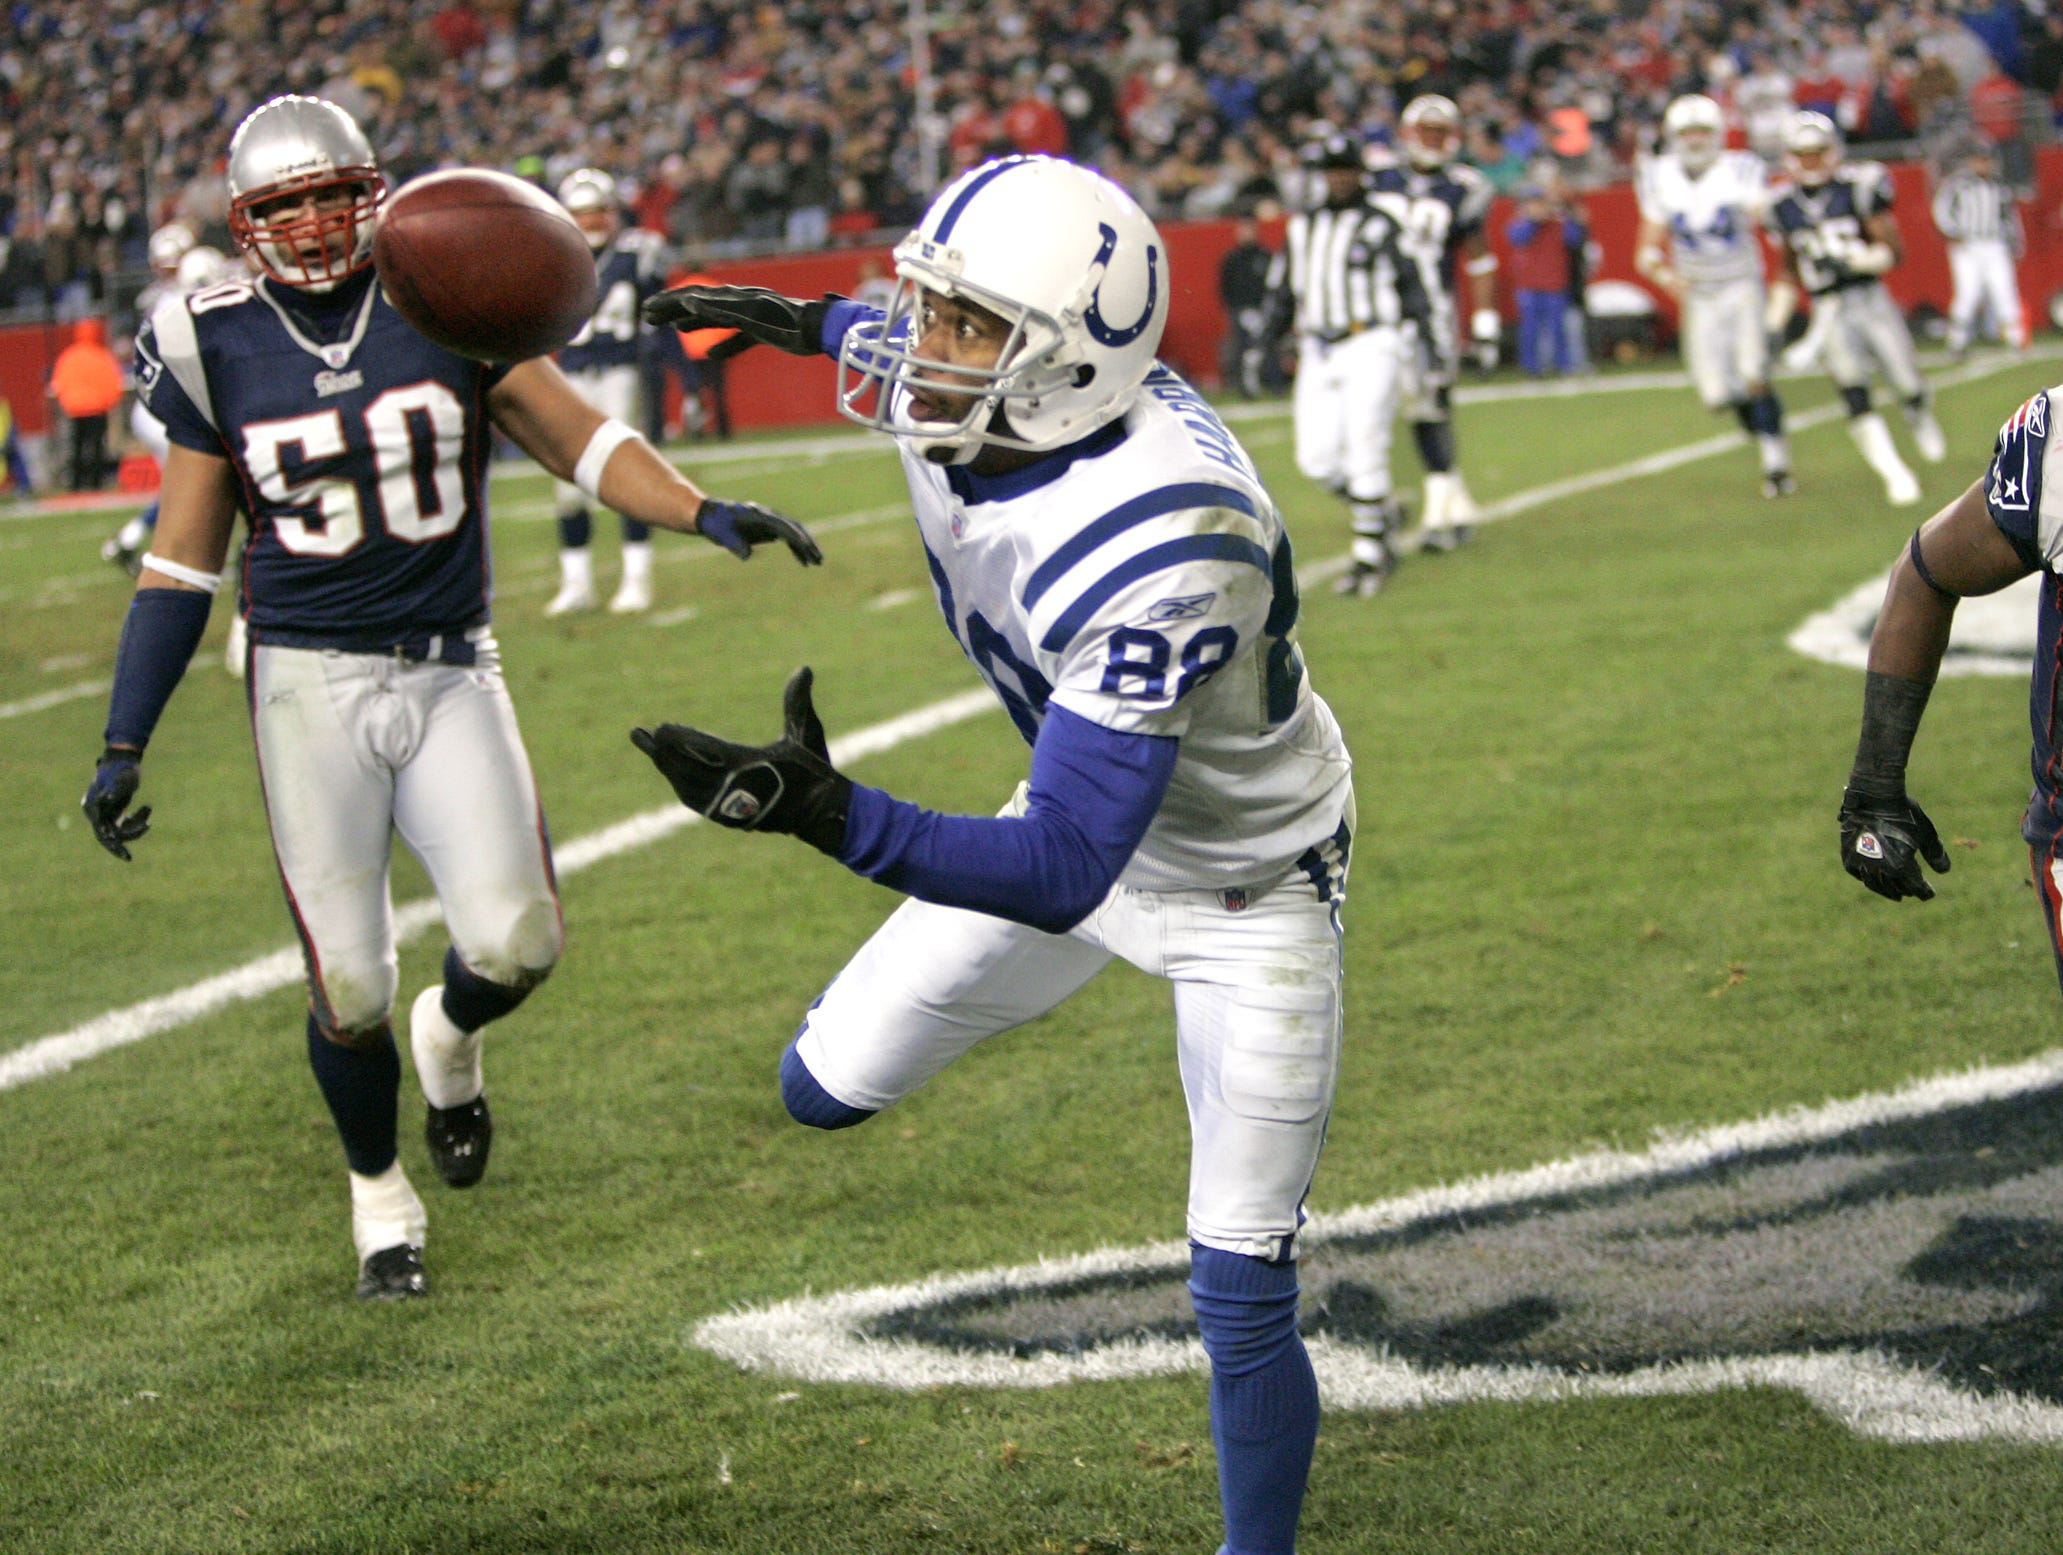 Indianapolis Colts Marvin Harrison keeps his concentration on the ball as he splits Patriot defenders Mike Vrabel and Ellis Hobbs to pull in a touchdown pass in the third quarter of their game Sunday, Nov 11, 2006.